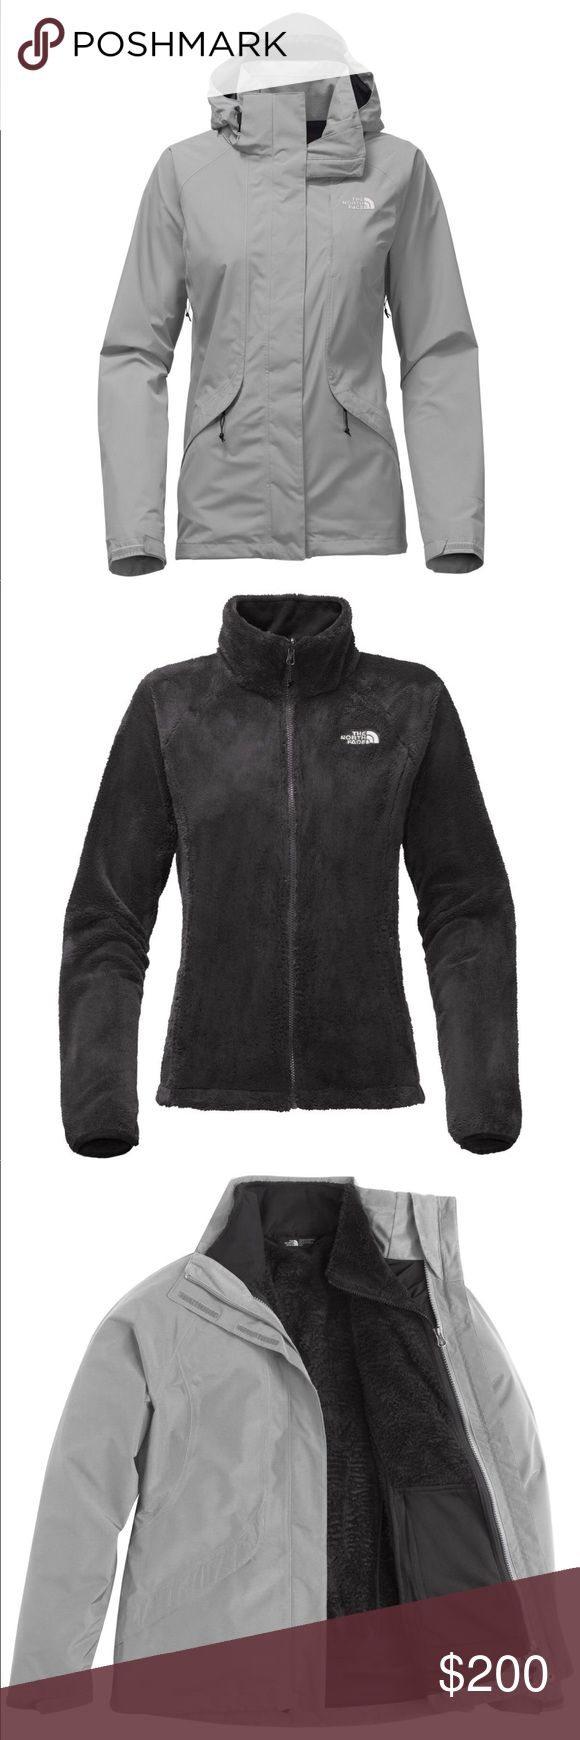 The North Face Women's Boundary Triclimate Jacket Brand new never worn. With tags. The North Face Women's Boundary Triclimate Jacket XS color: Mid Grey  3 coats in one! Has black fleece that zips into shell that can be used as rain coat The North Face Jackets & Coats